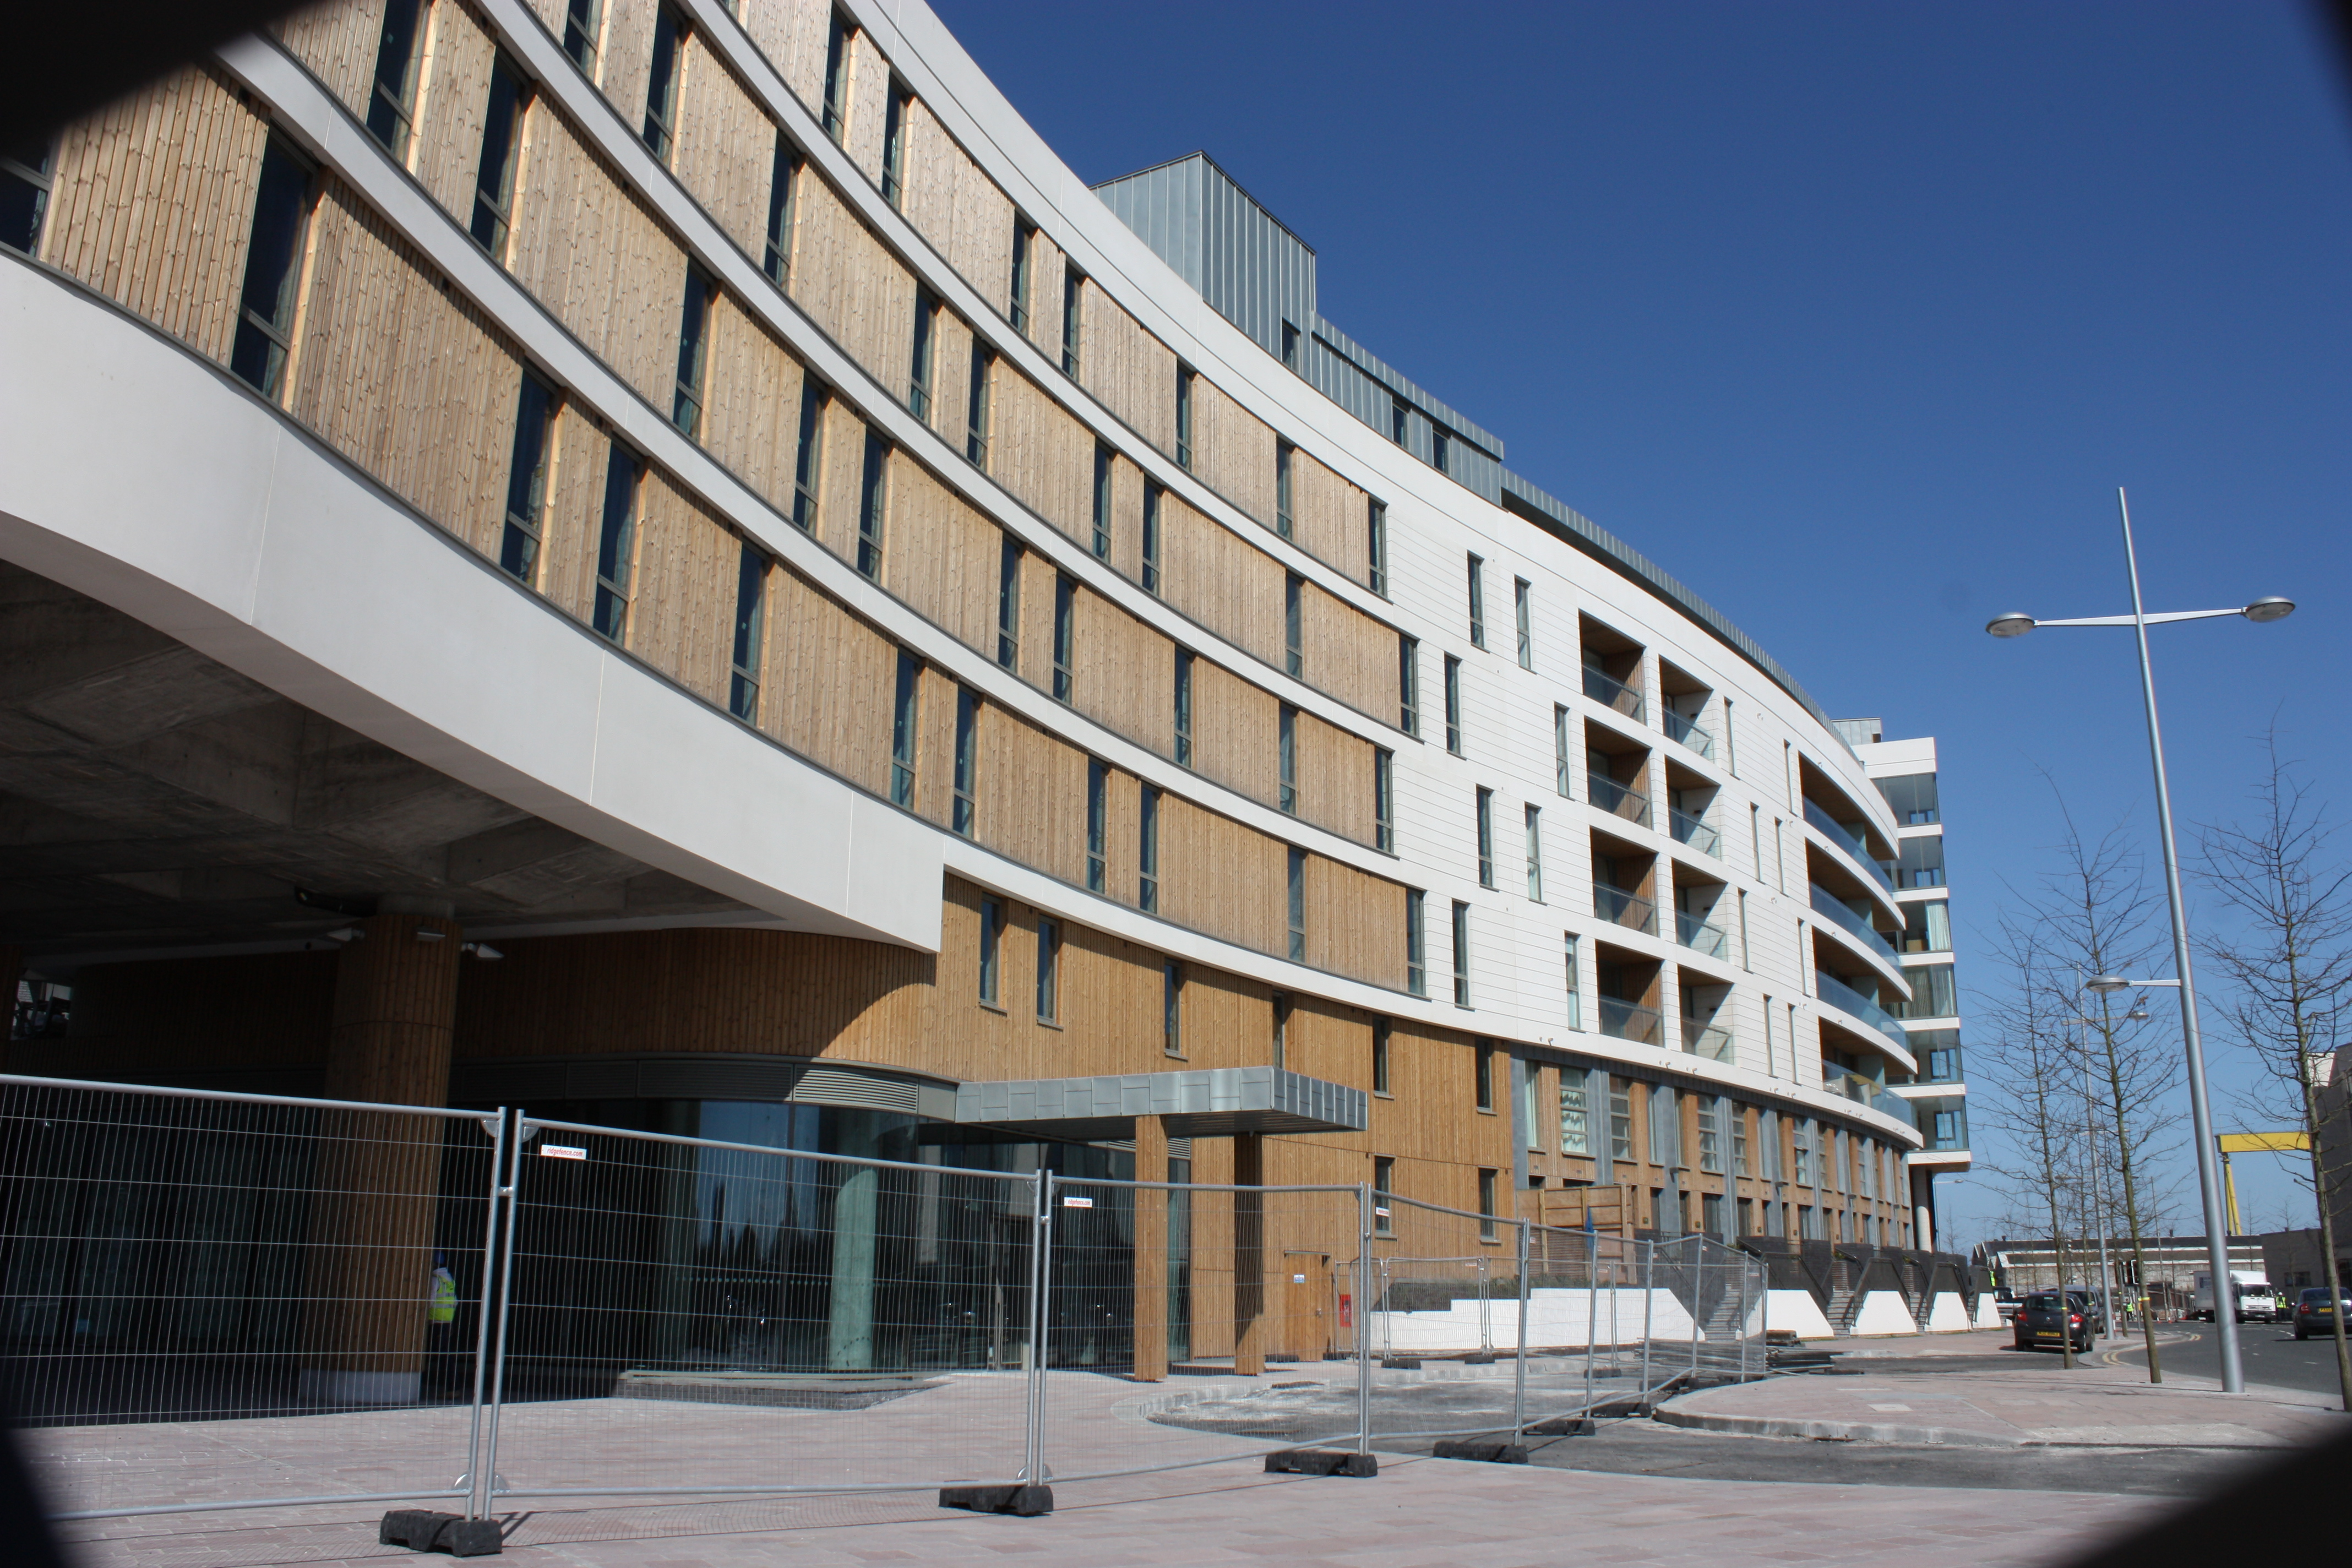 File:Titanic Quarter apartments, Belfast, April 2010 (05 ...